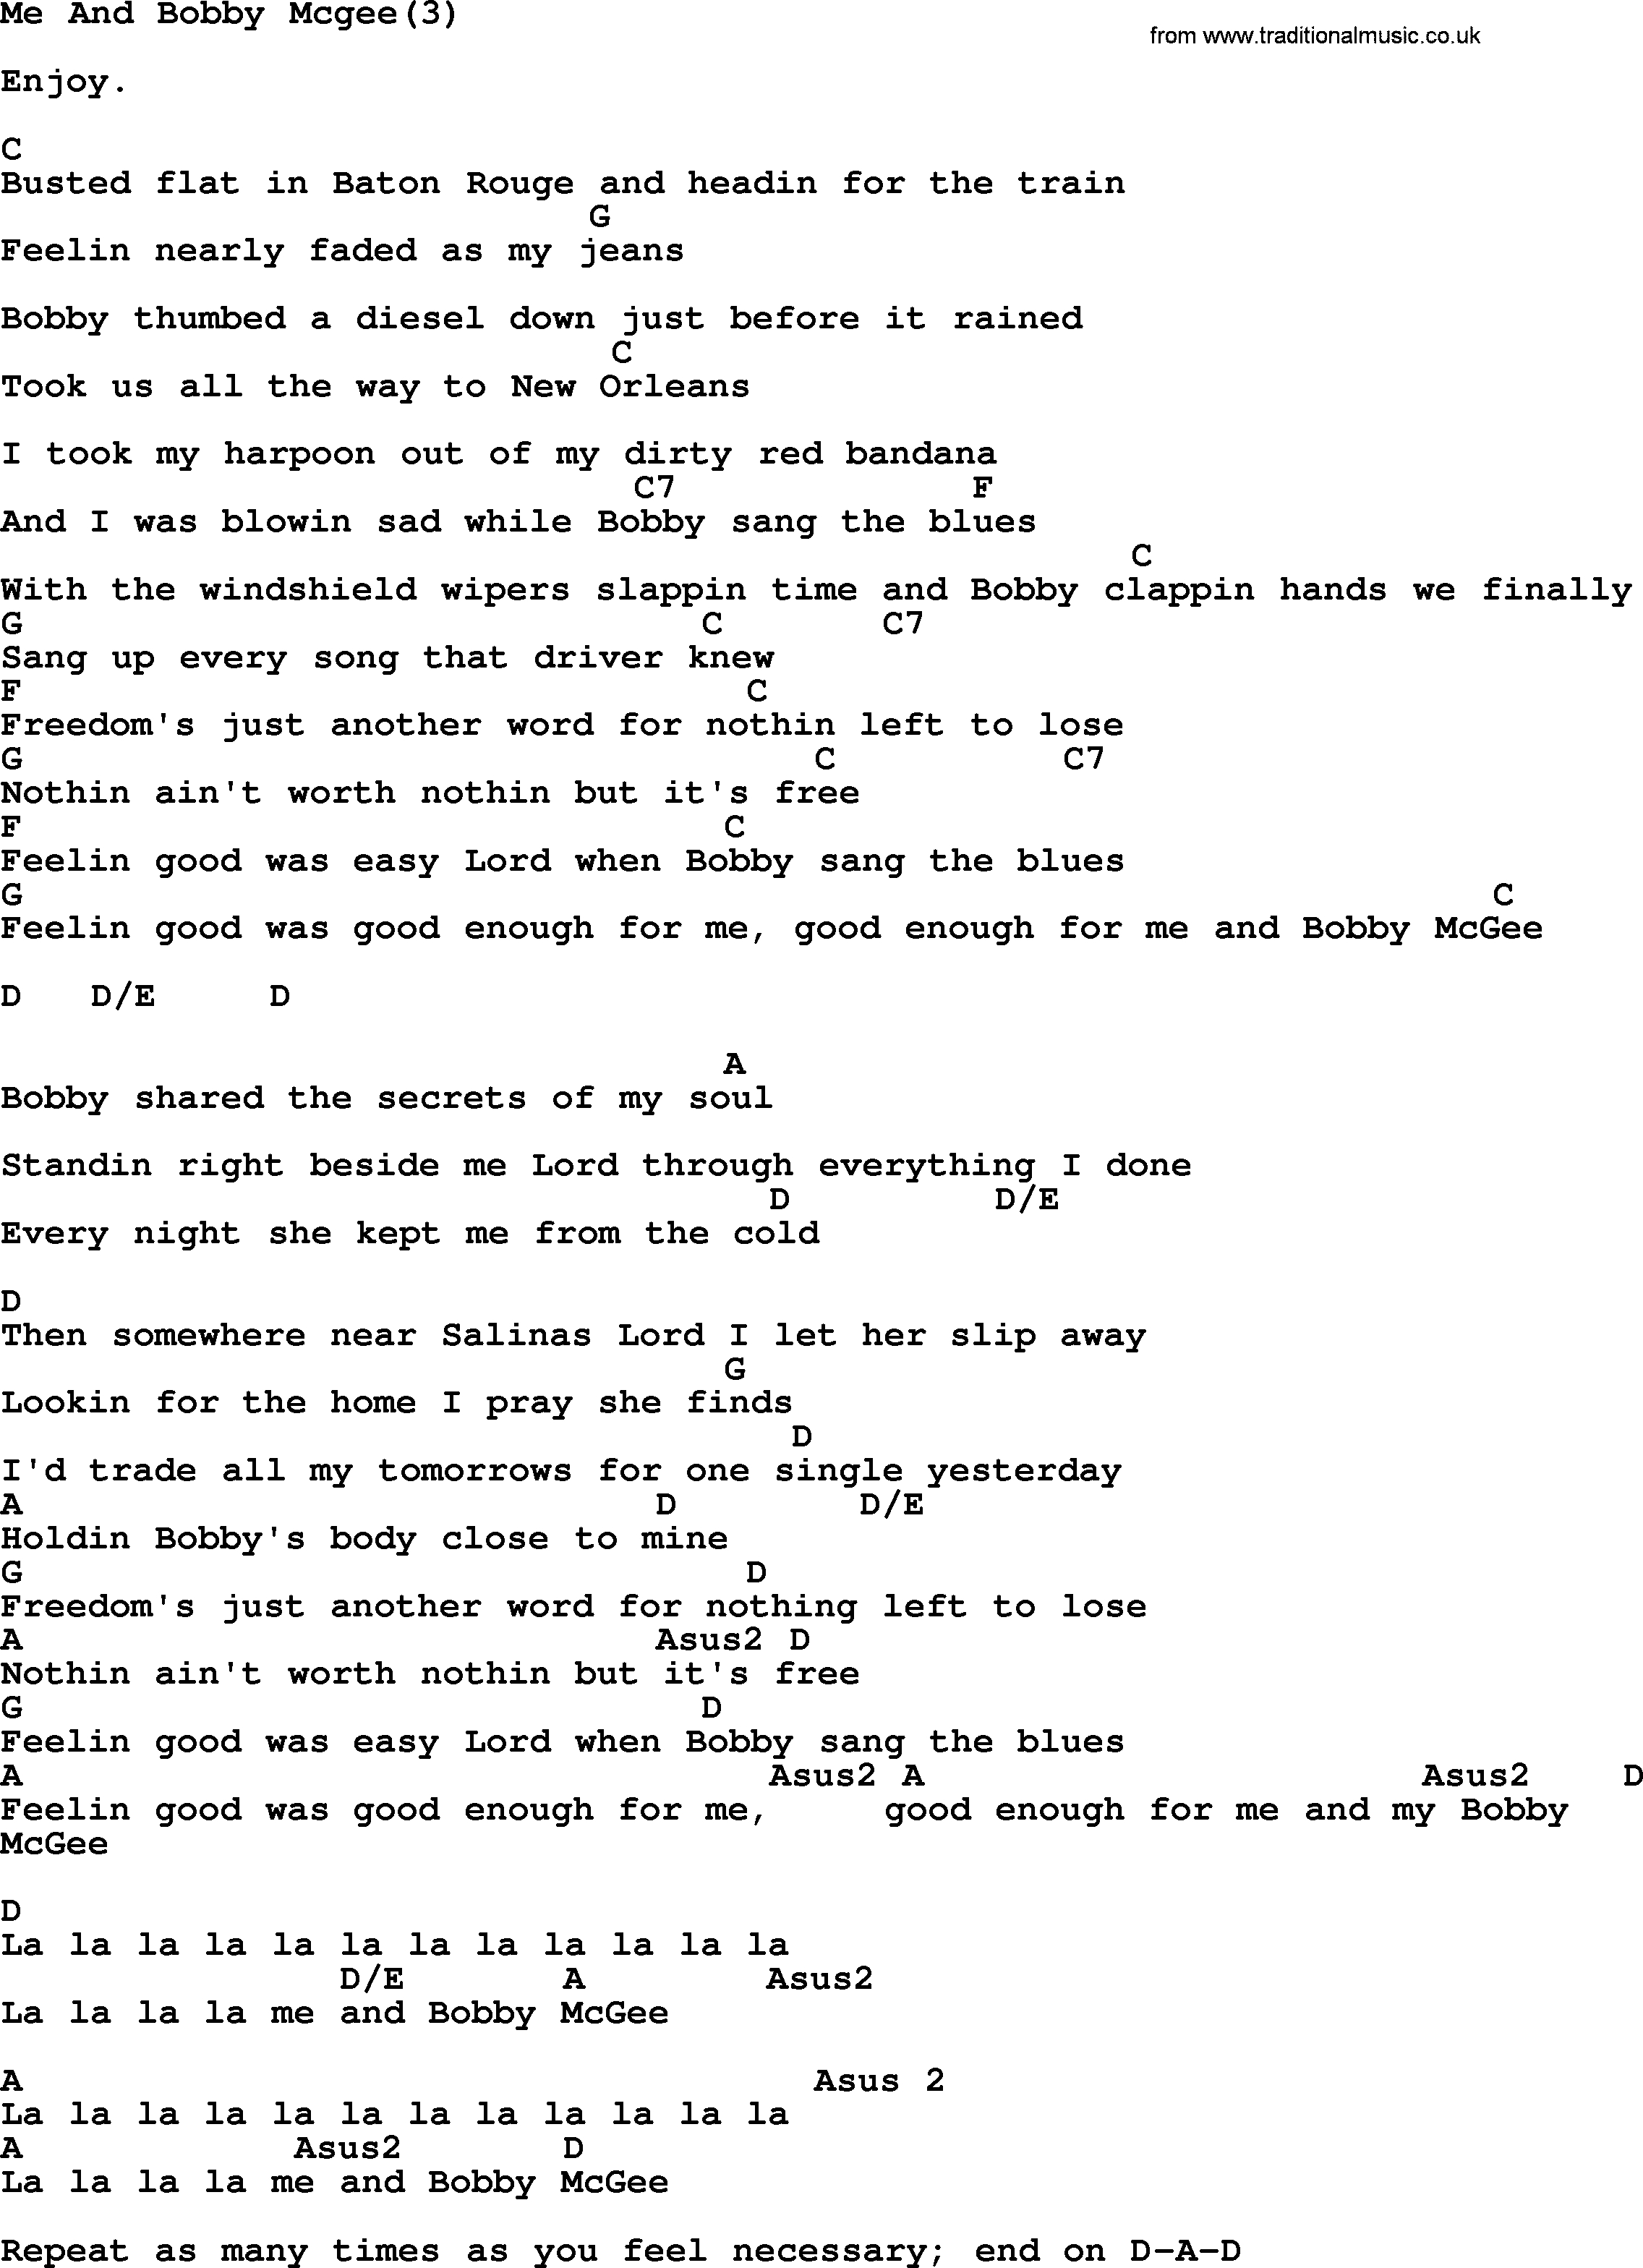 Me And Bobby Mcgee Chords Kris Kristofferson Song Me And Bob Mcgee3 Lyrics And Chords